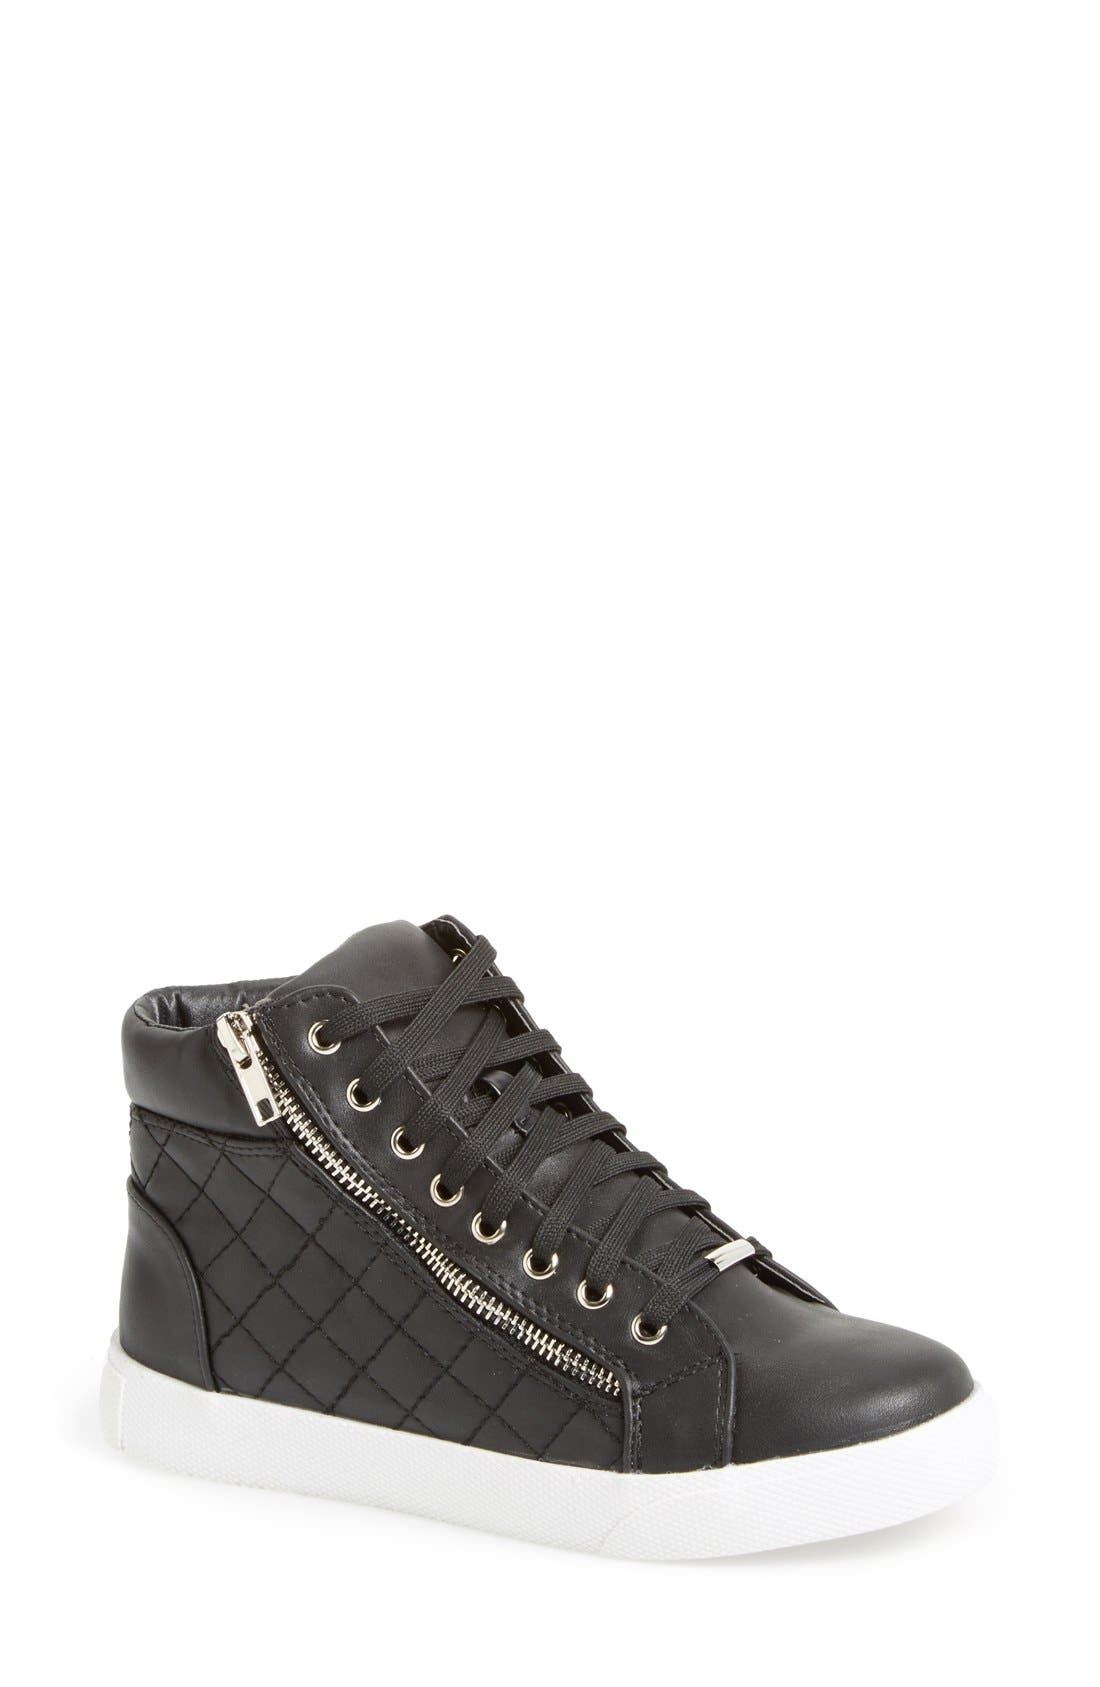 Alternate Image 1 Selected - Steve Madden 'Decaf' Quilted High Top Sneaker (Women)